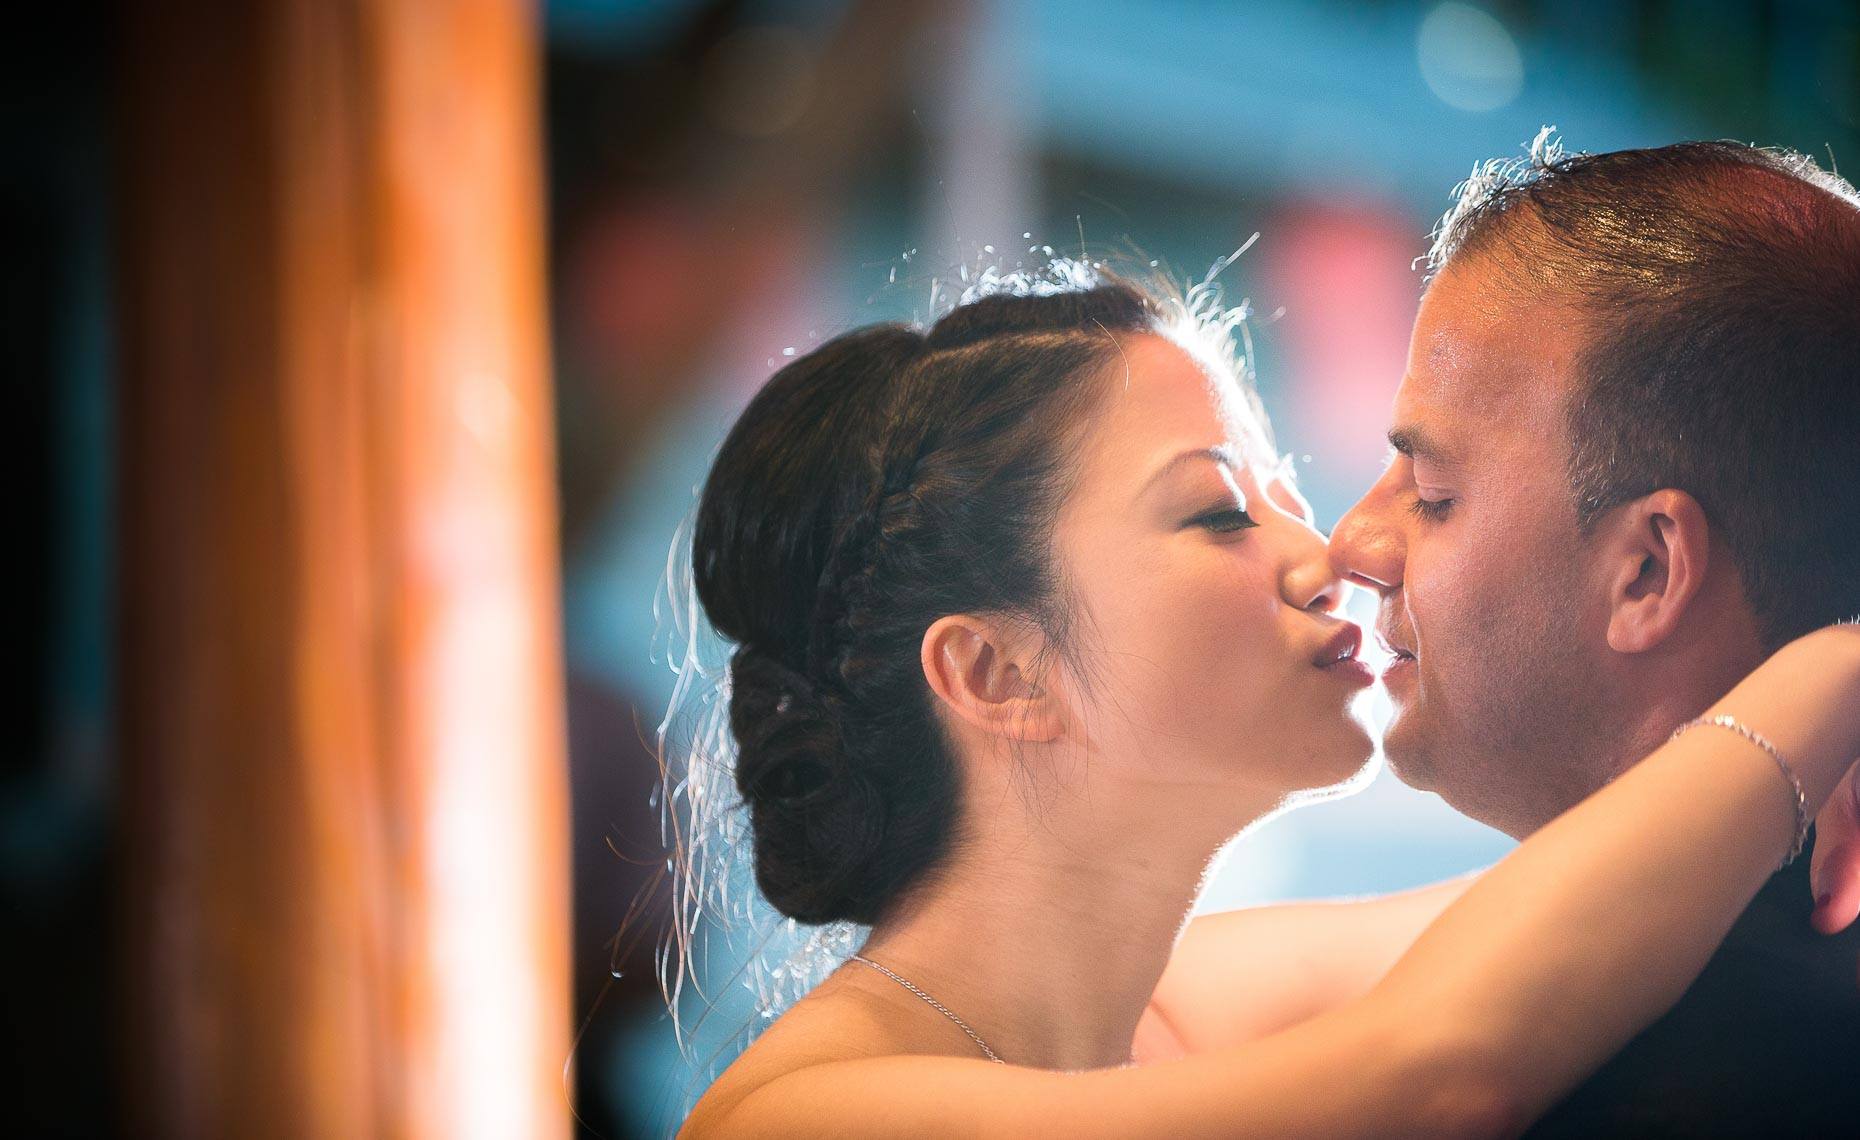 Whistler wedding photographer shoots intimate genuine moment